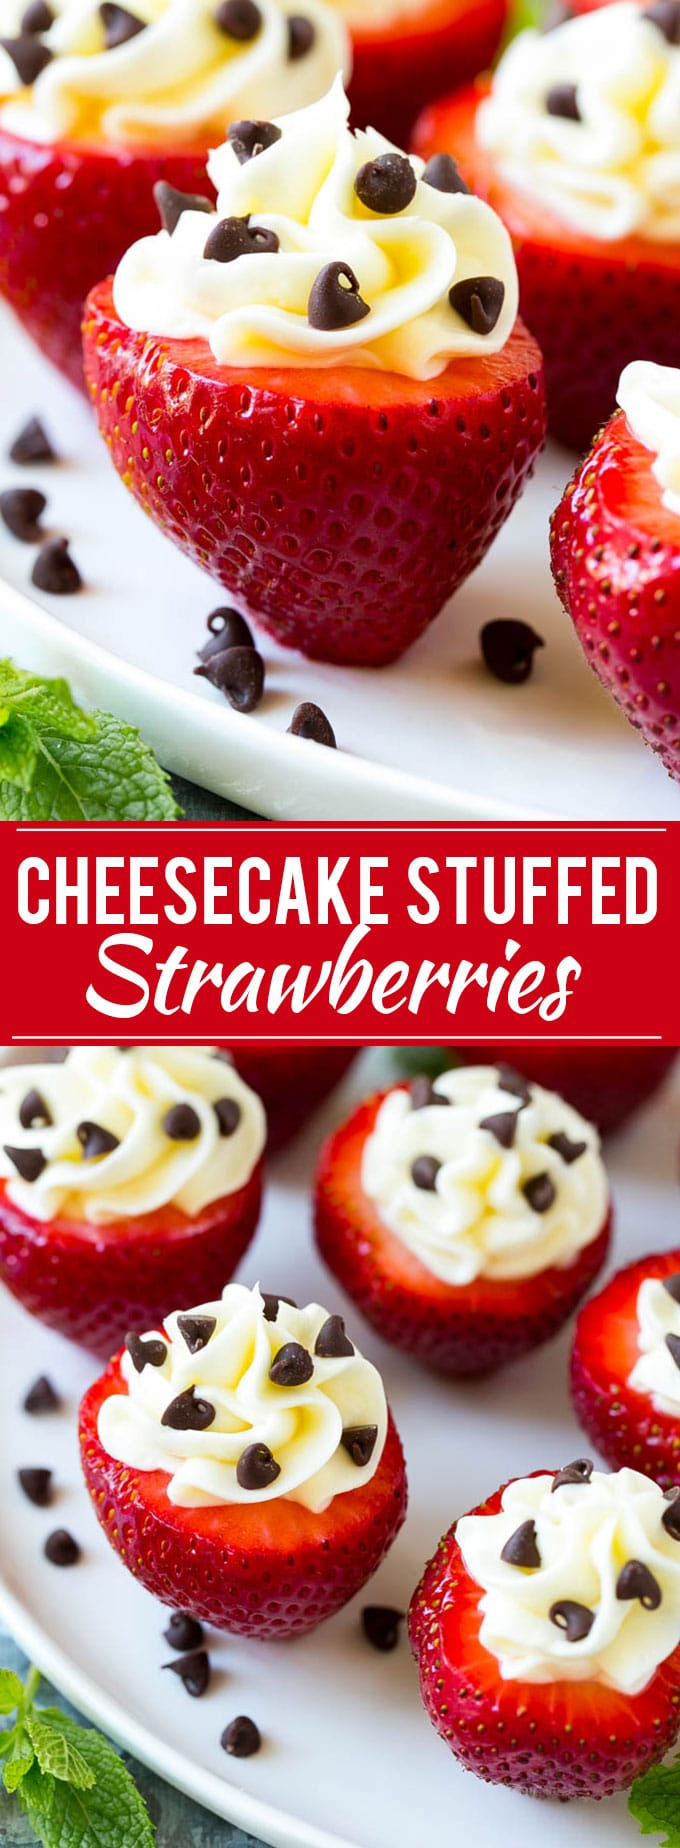 Cheesecake Stuffed Strawberries Recipe | No Bake Dessert Recipe | Stuffed Strawberries | No Bake Cheesecake Recipe #cheesecake #strawberries #fruit #dessert #dinneratthezoo